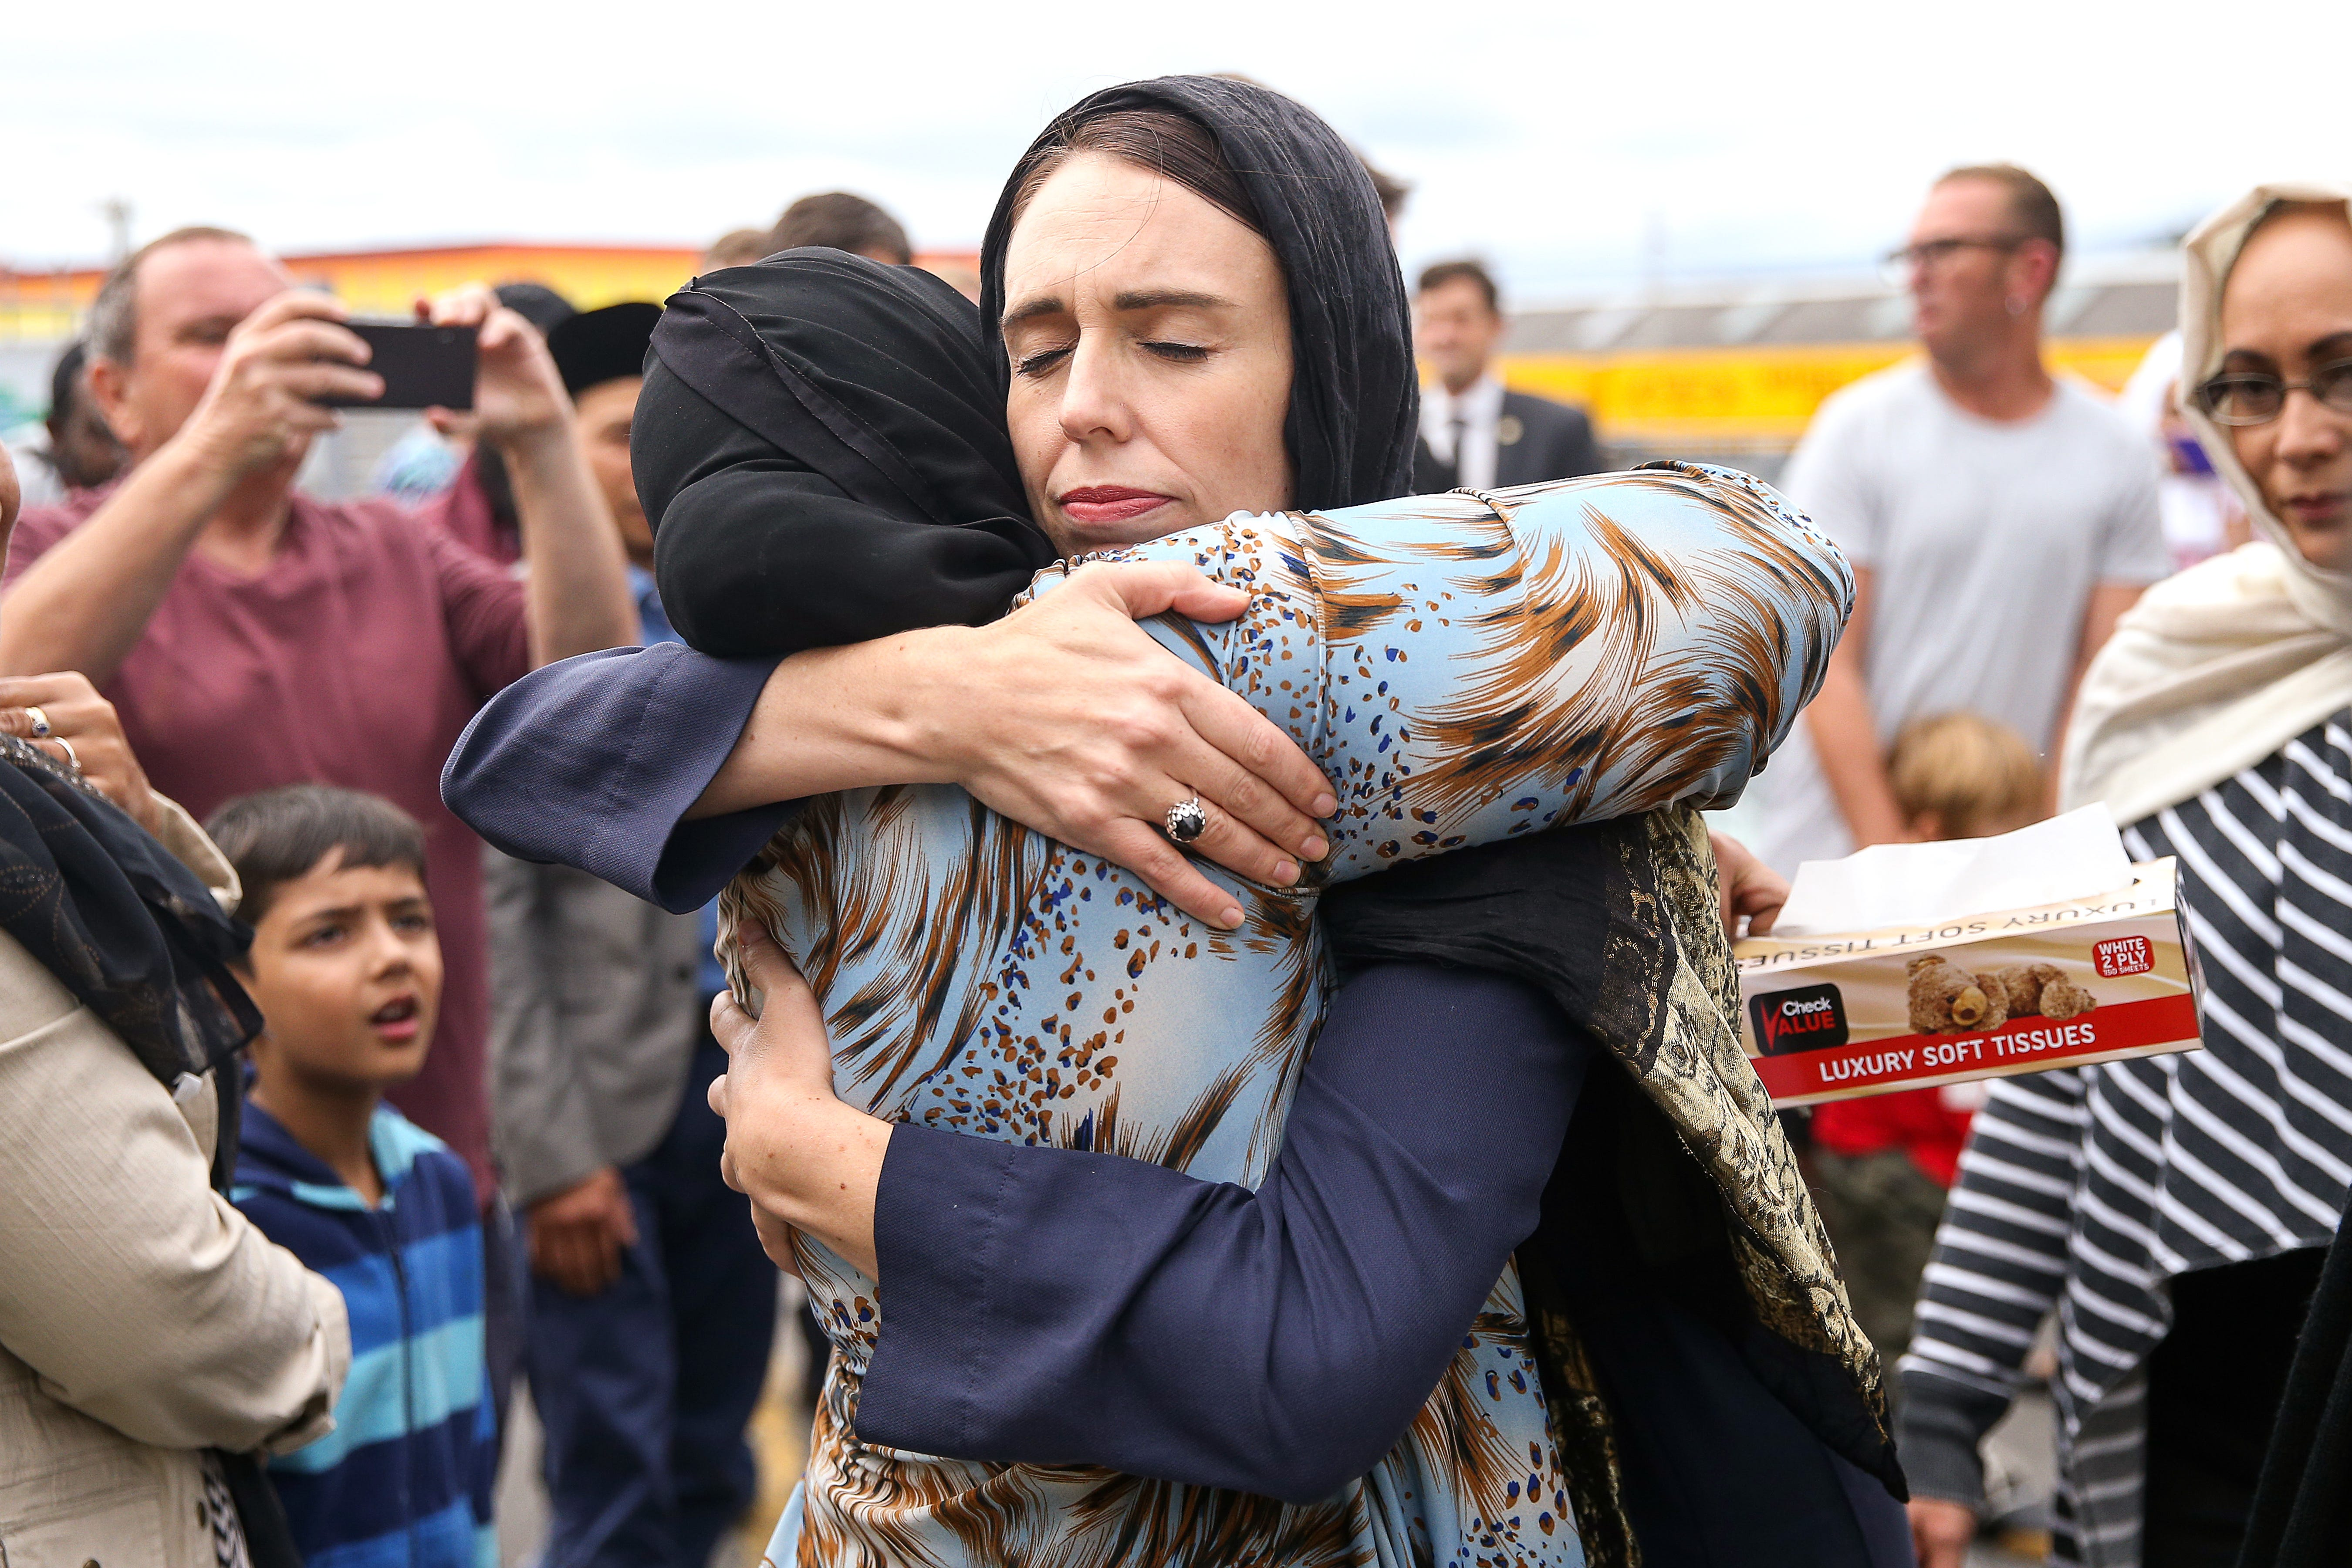 Prime Minister Jacinda Ardern hugs a mosque-goer at the Kilbirnie Mosque on March 17, 2019, in Wellington, New Zealand.